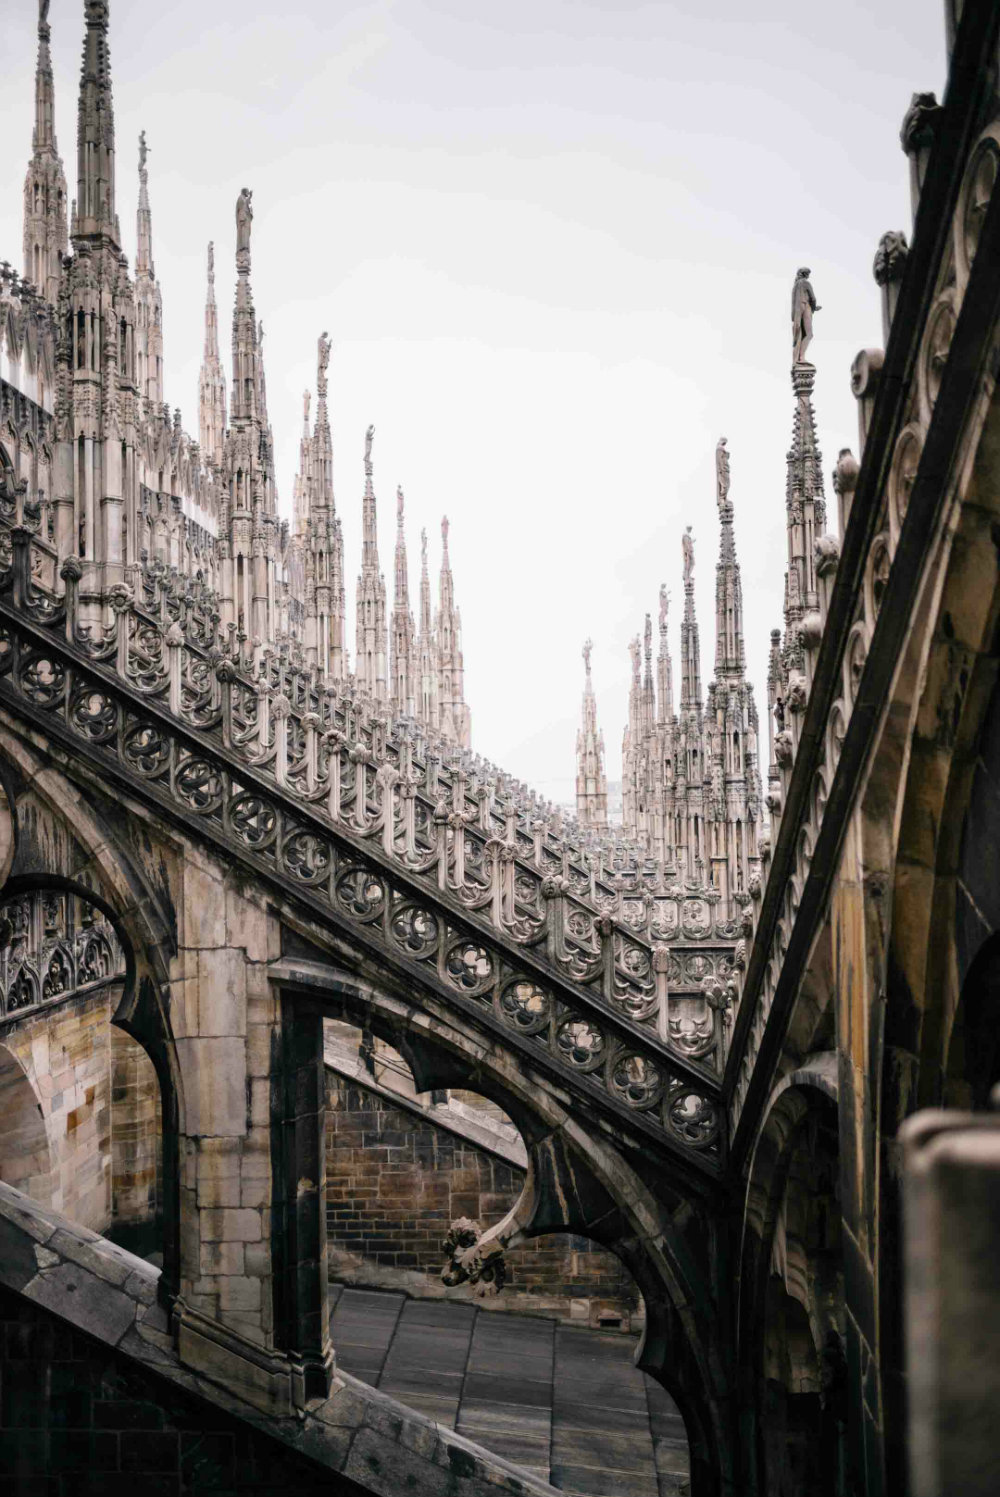 7 Most Instagrammable Places In Milan milan design week 2019 Milan Design Week 2019 – The Best Events 7mostinstagrammableplacesinmilan01 milan design week 2019 Milan Design Week 2019 – The Best Events 7mostinstagrammableplacesinmilan01